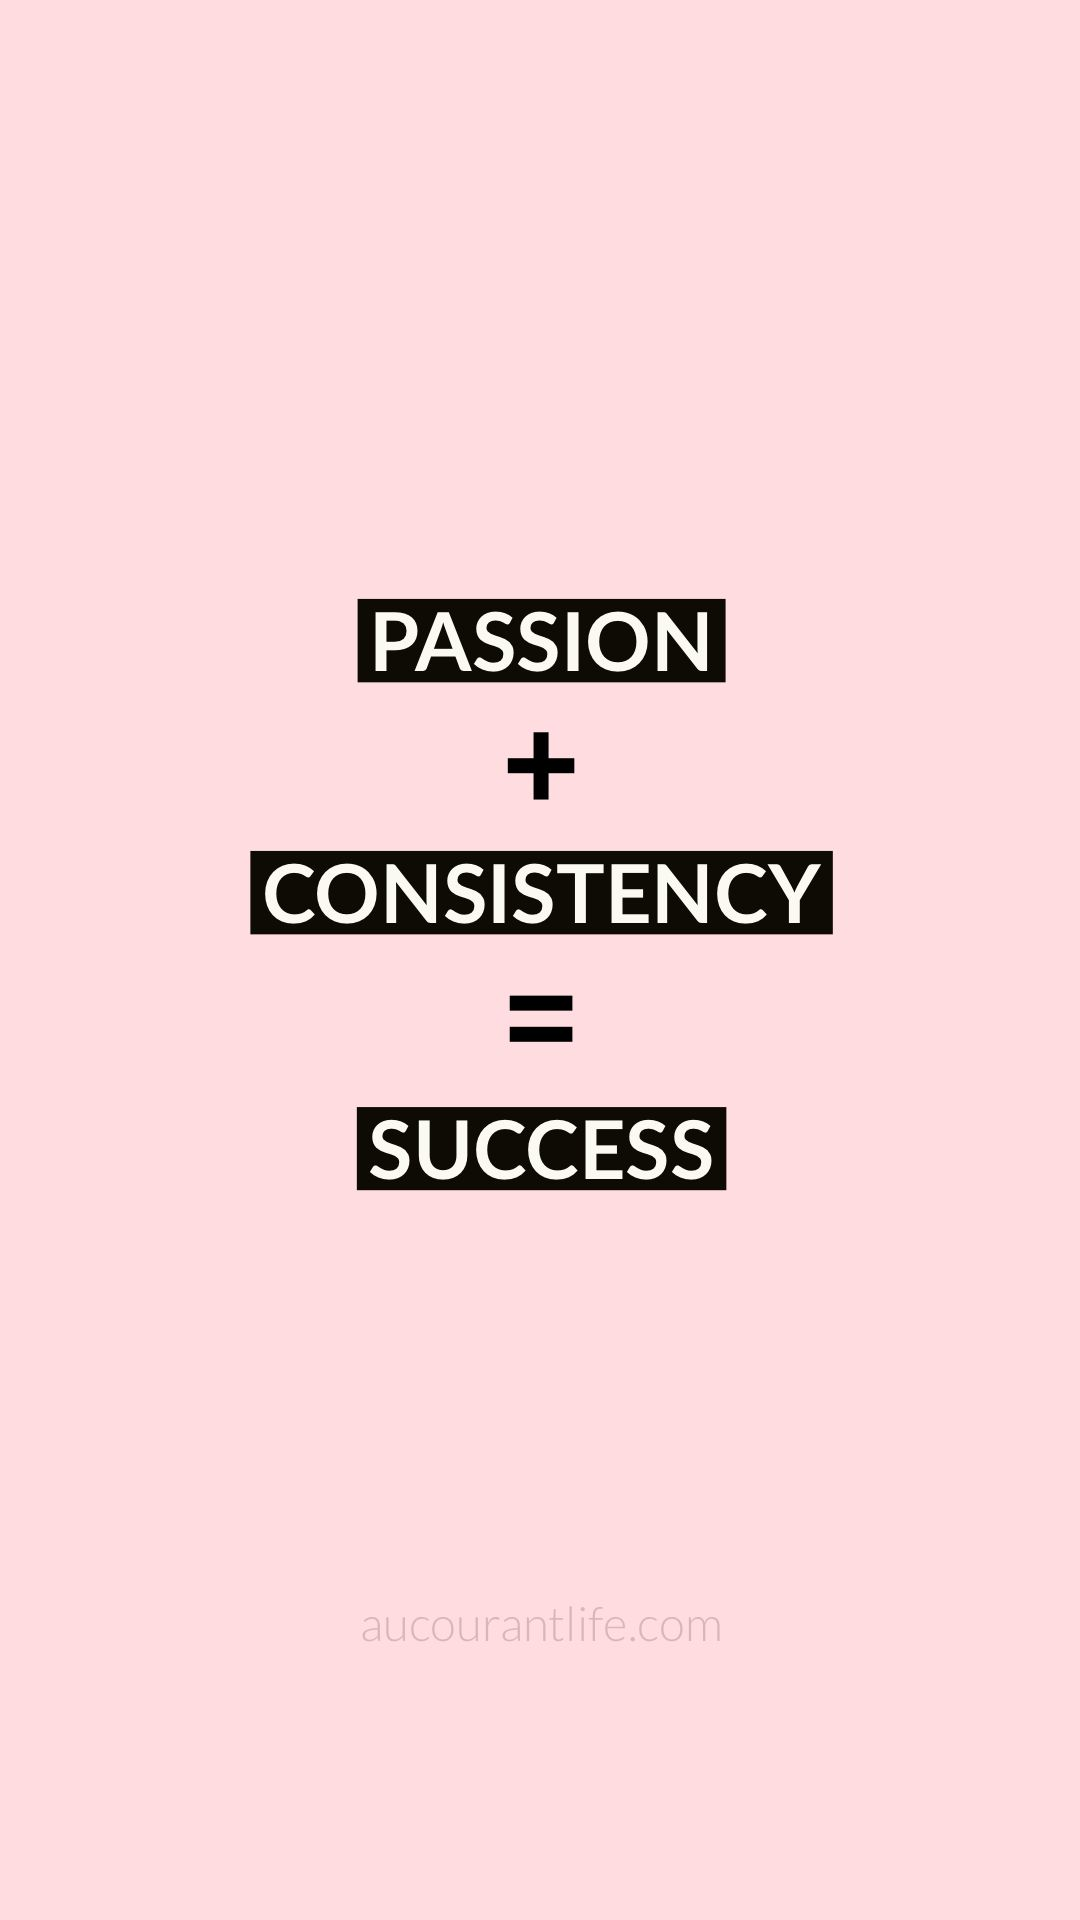 Passion Plus Consistency Equals Success Aucourantlife Com